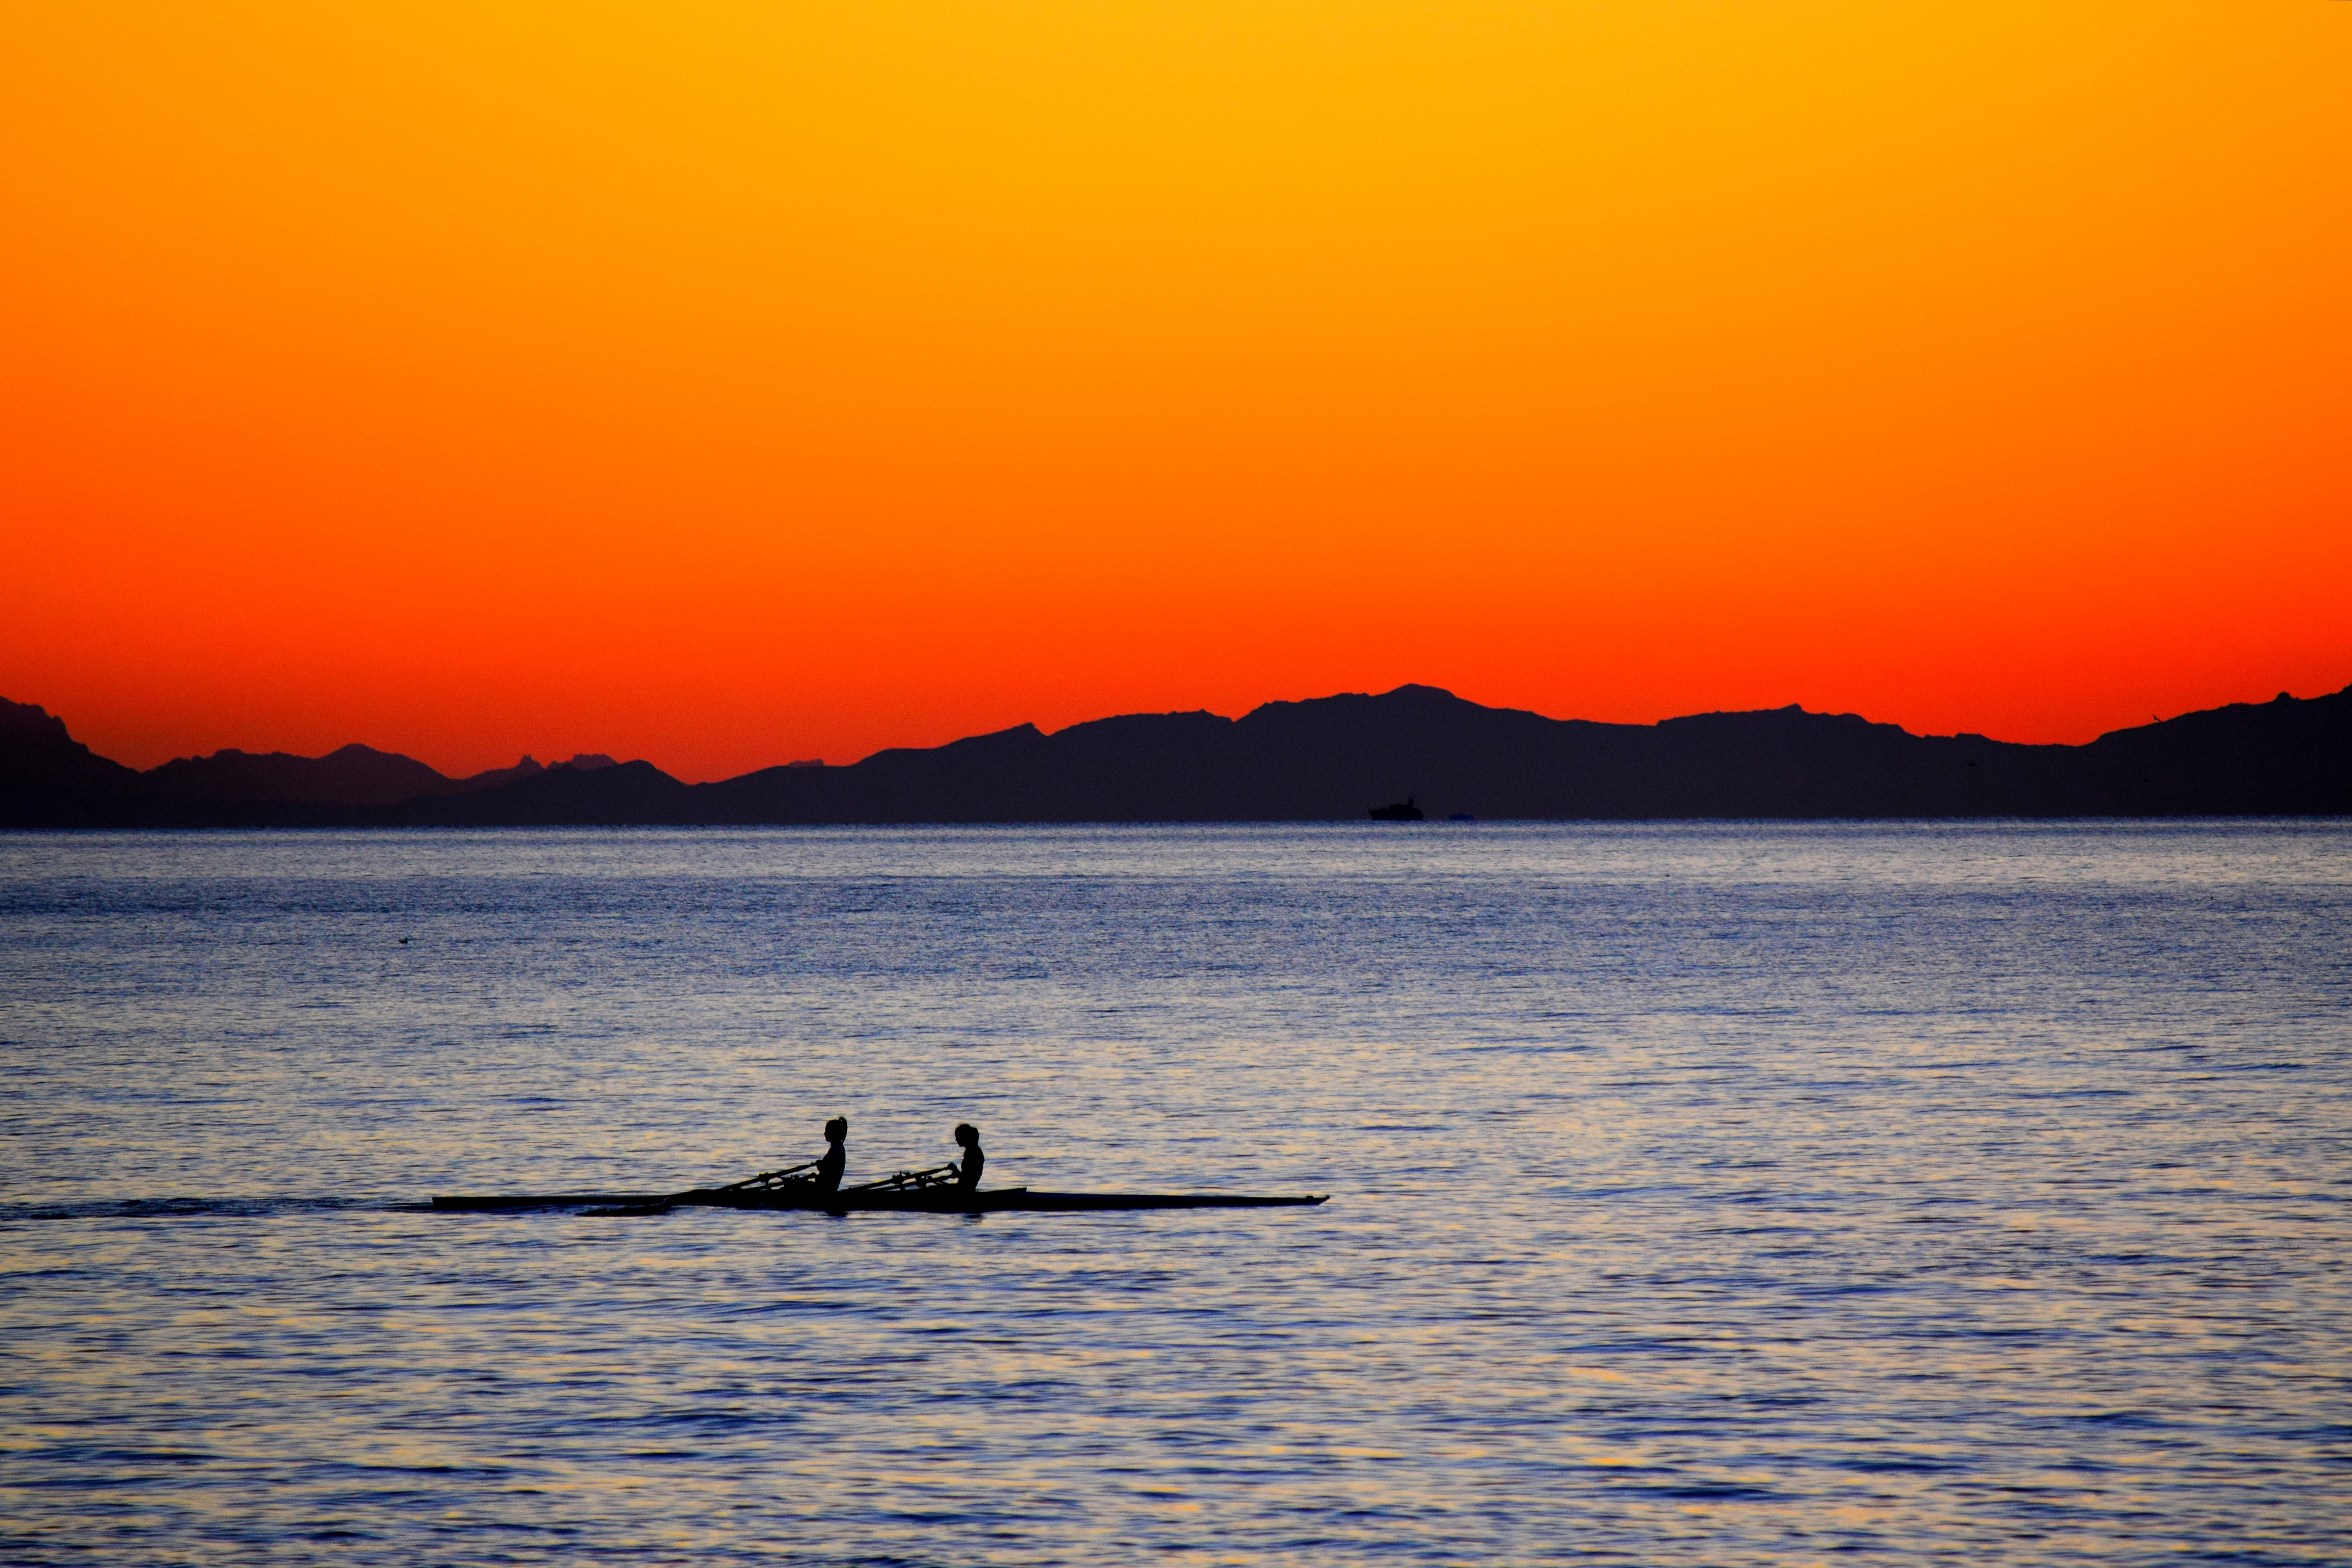 silhouette of two persons on boat during sunset